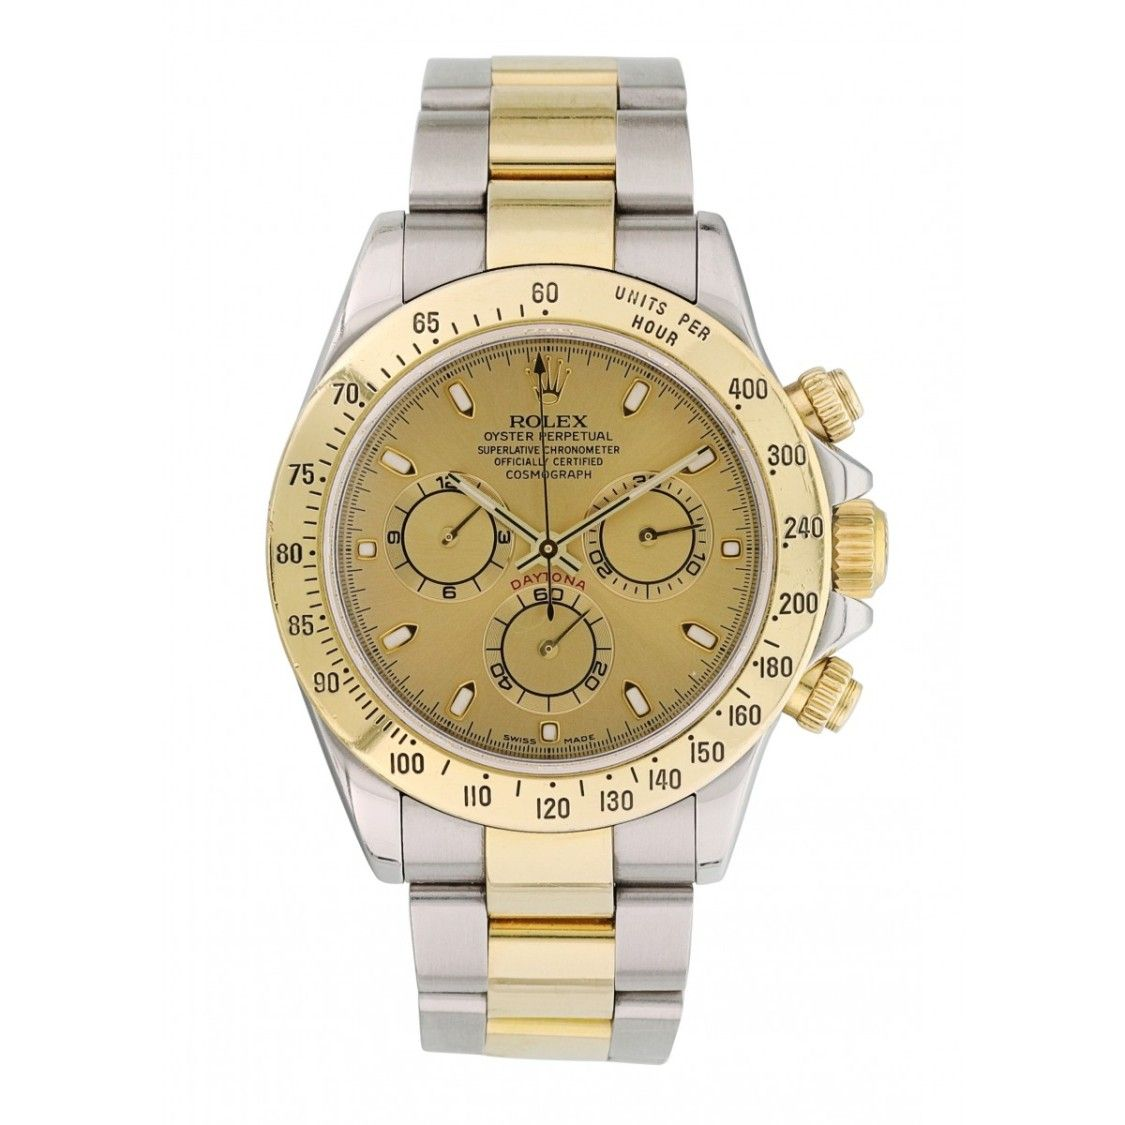 Rolex Lingerie Daytona 116523 Mens Watch